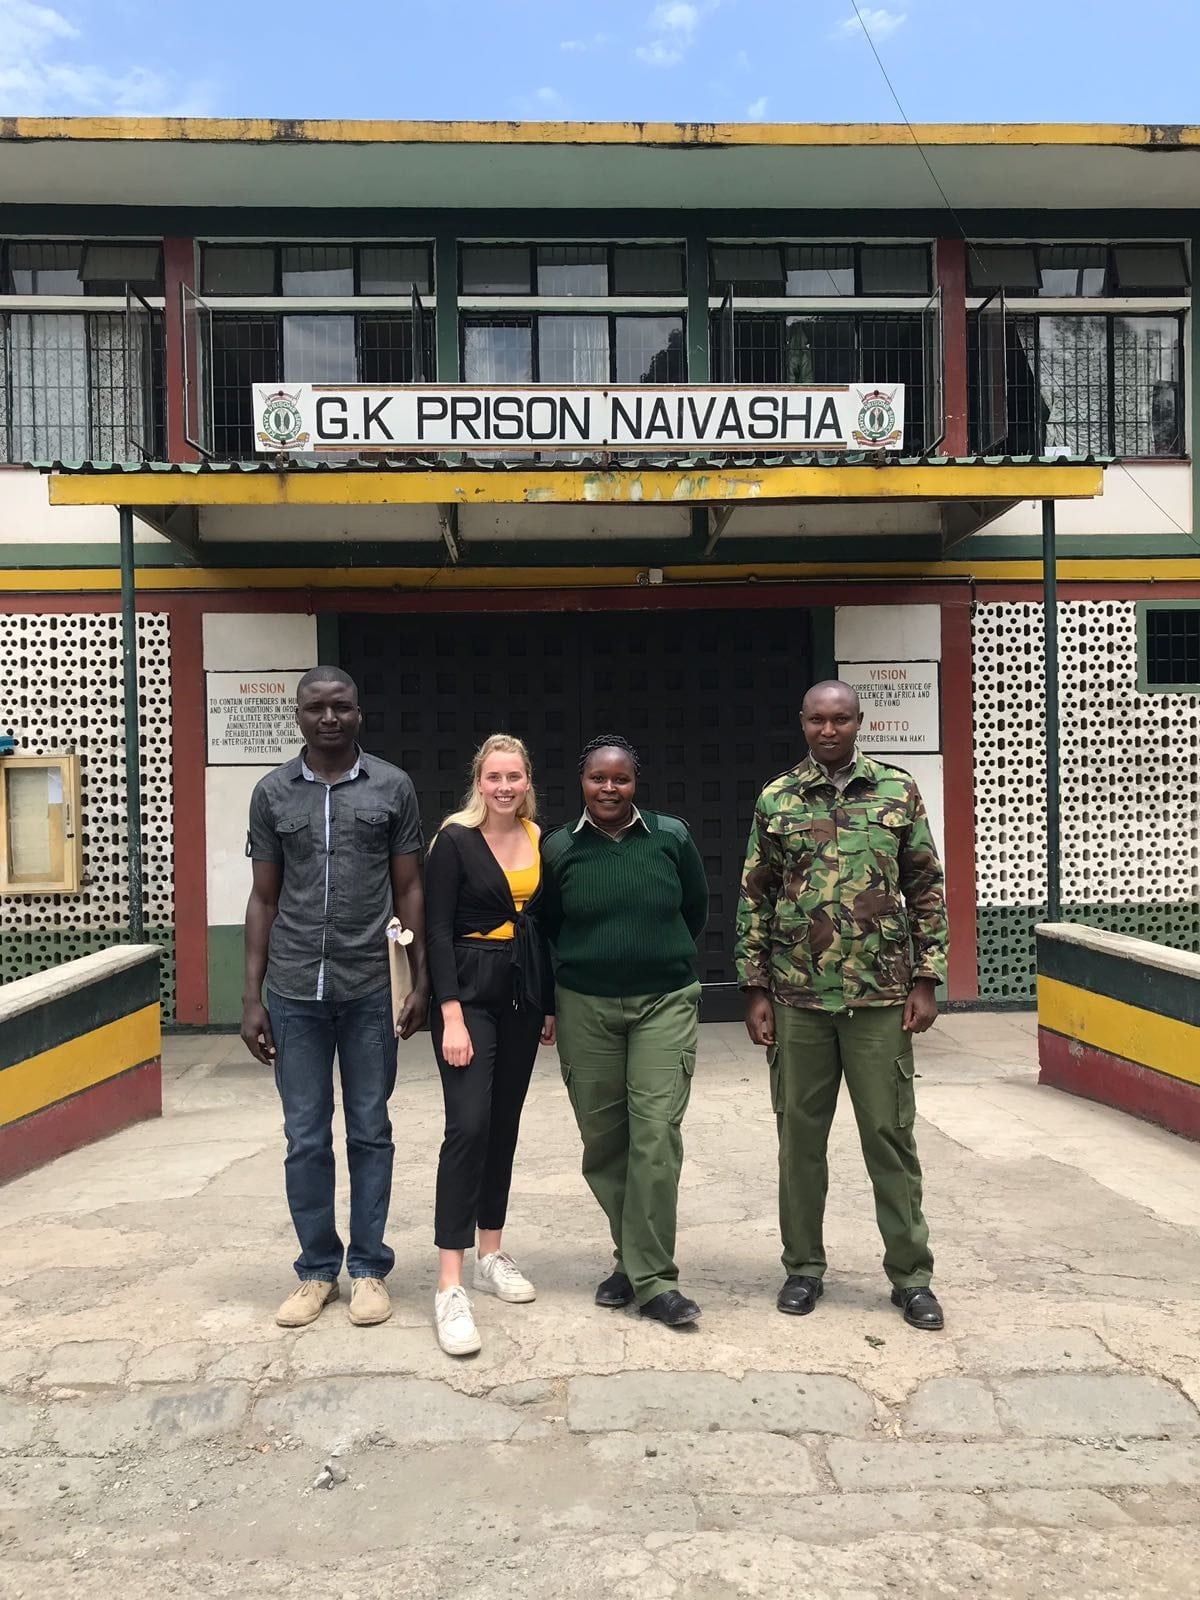 Pro bono: Further reflections on the African Prisons Project experience